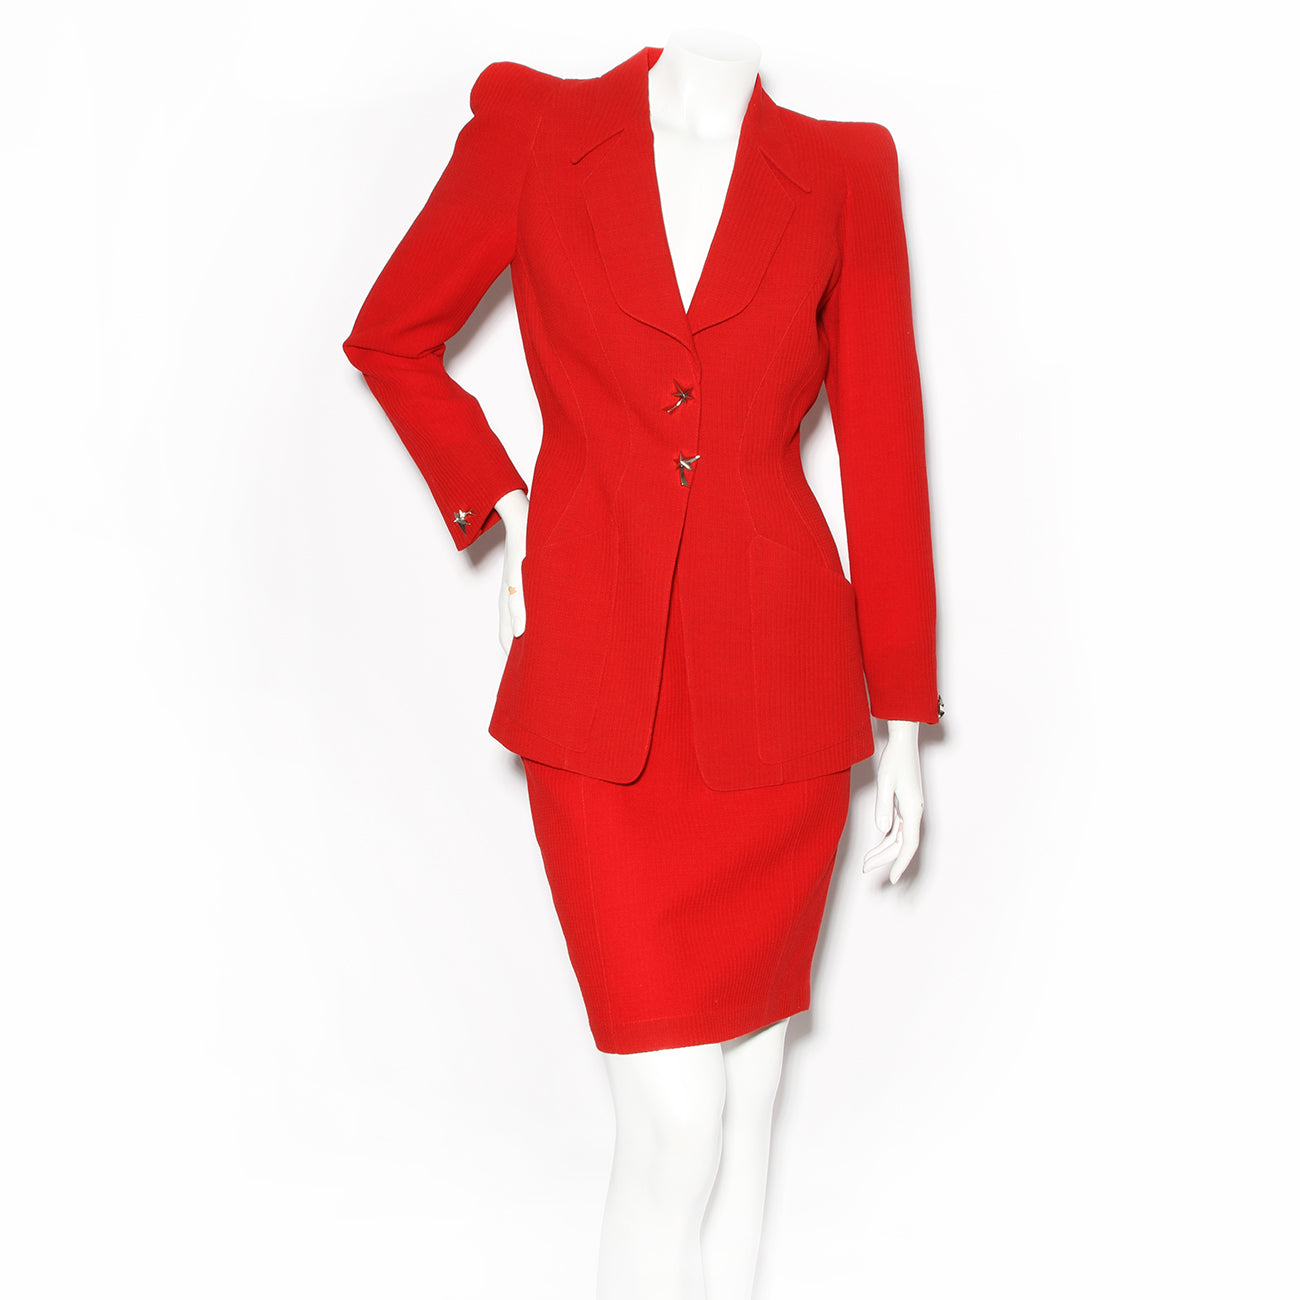 Thierry Mugler Red Skirt Suit with Silver Star Buttons